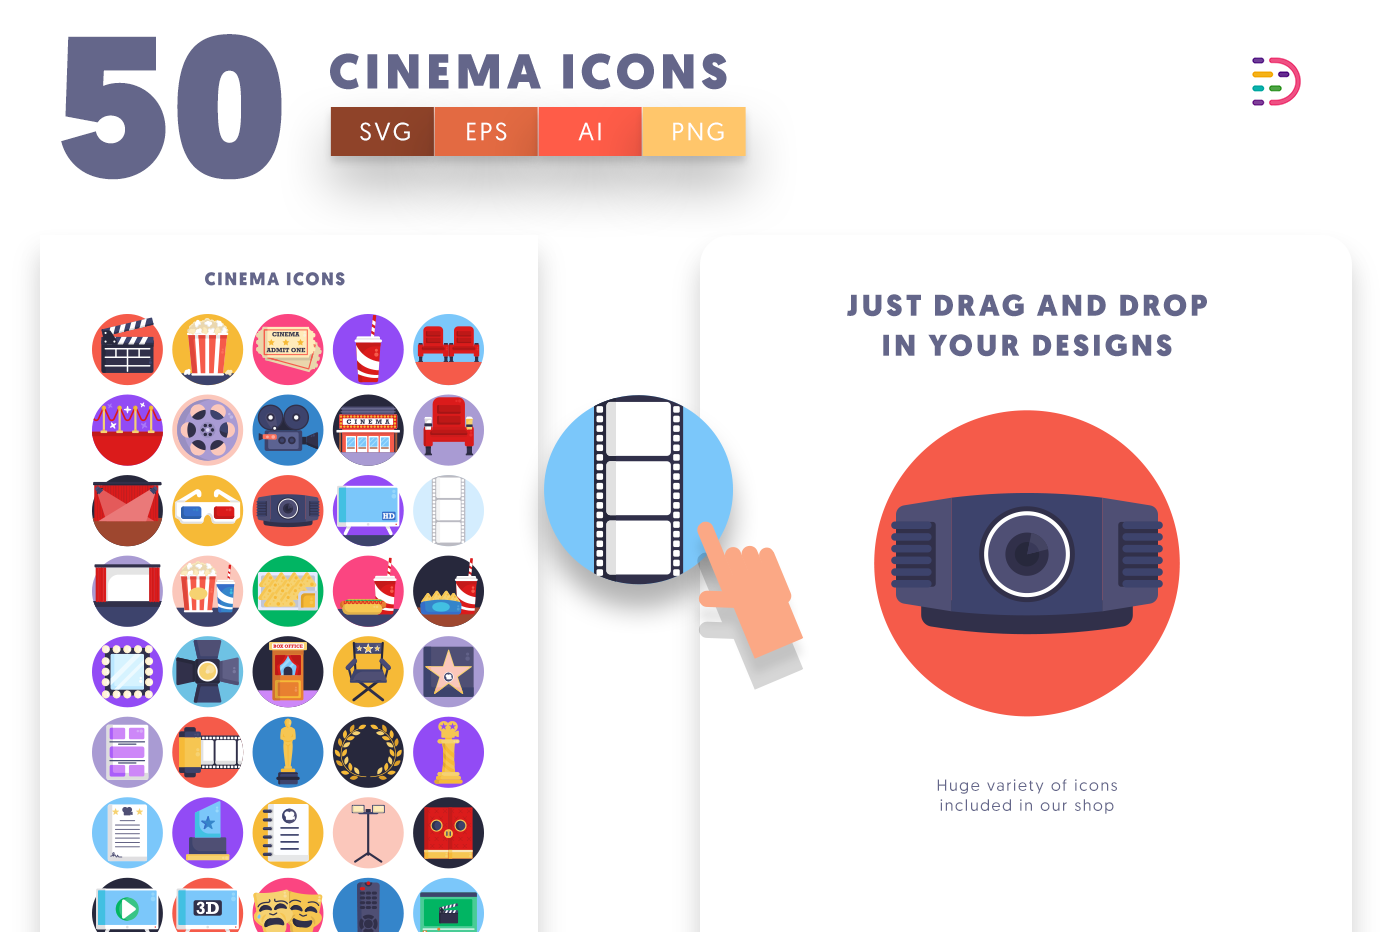 Drag and drop vector 50 Cinema Icons